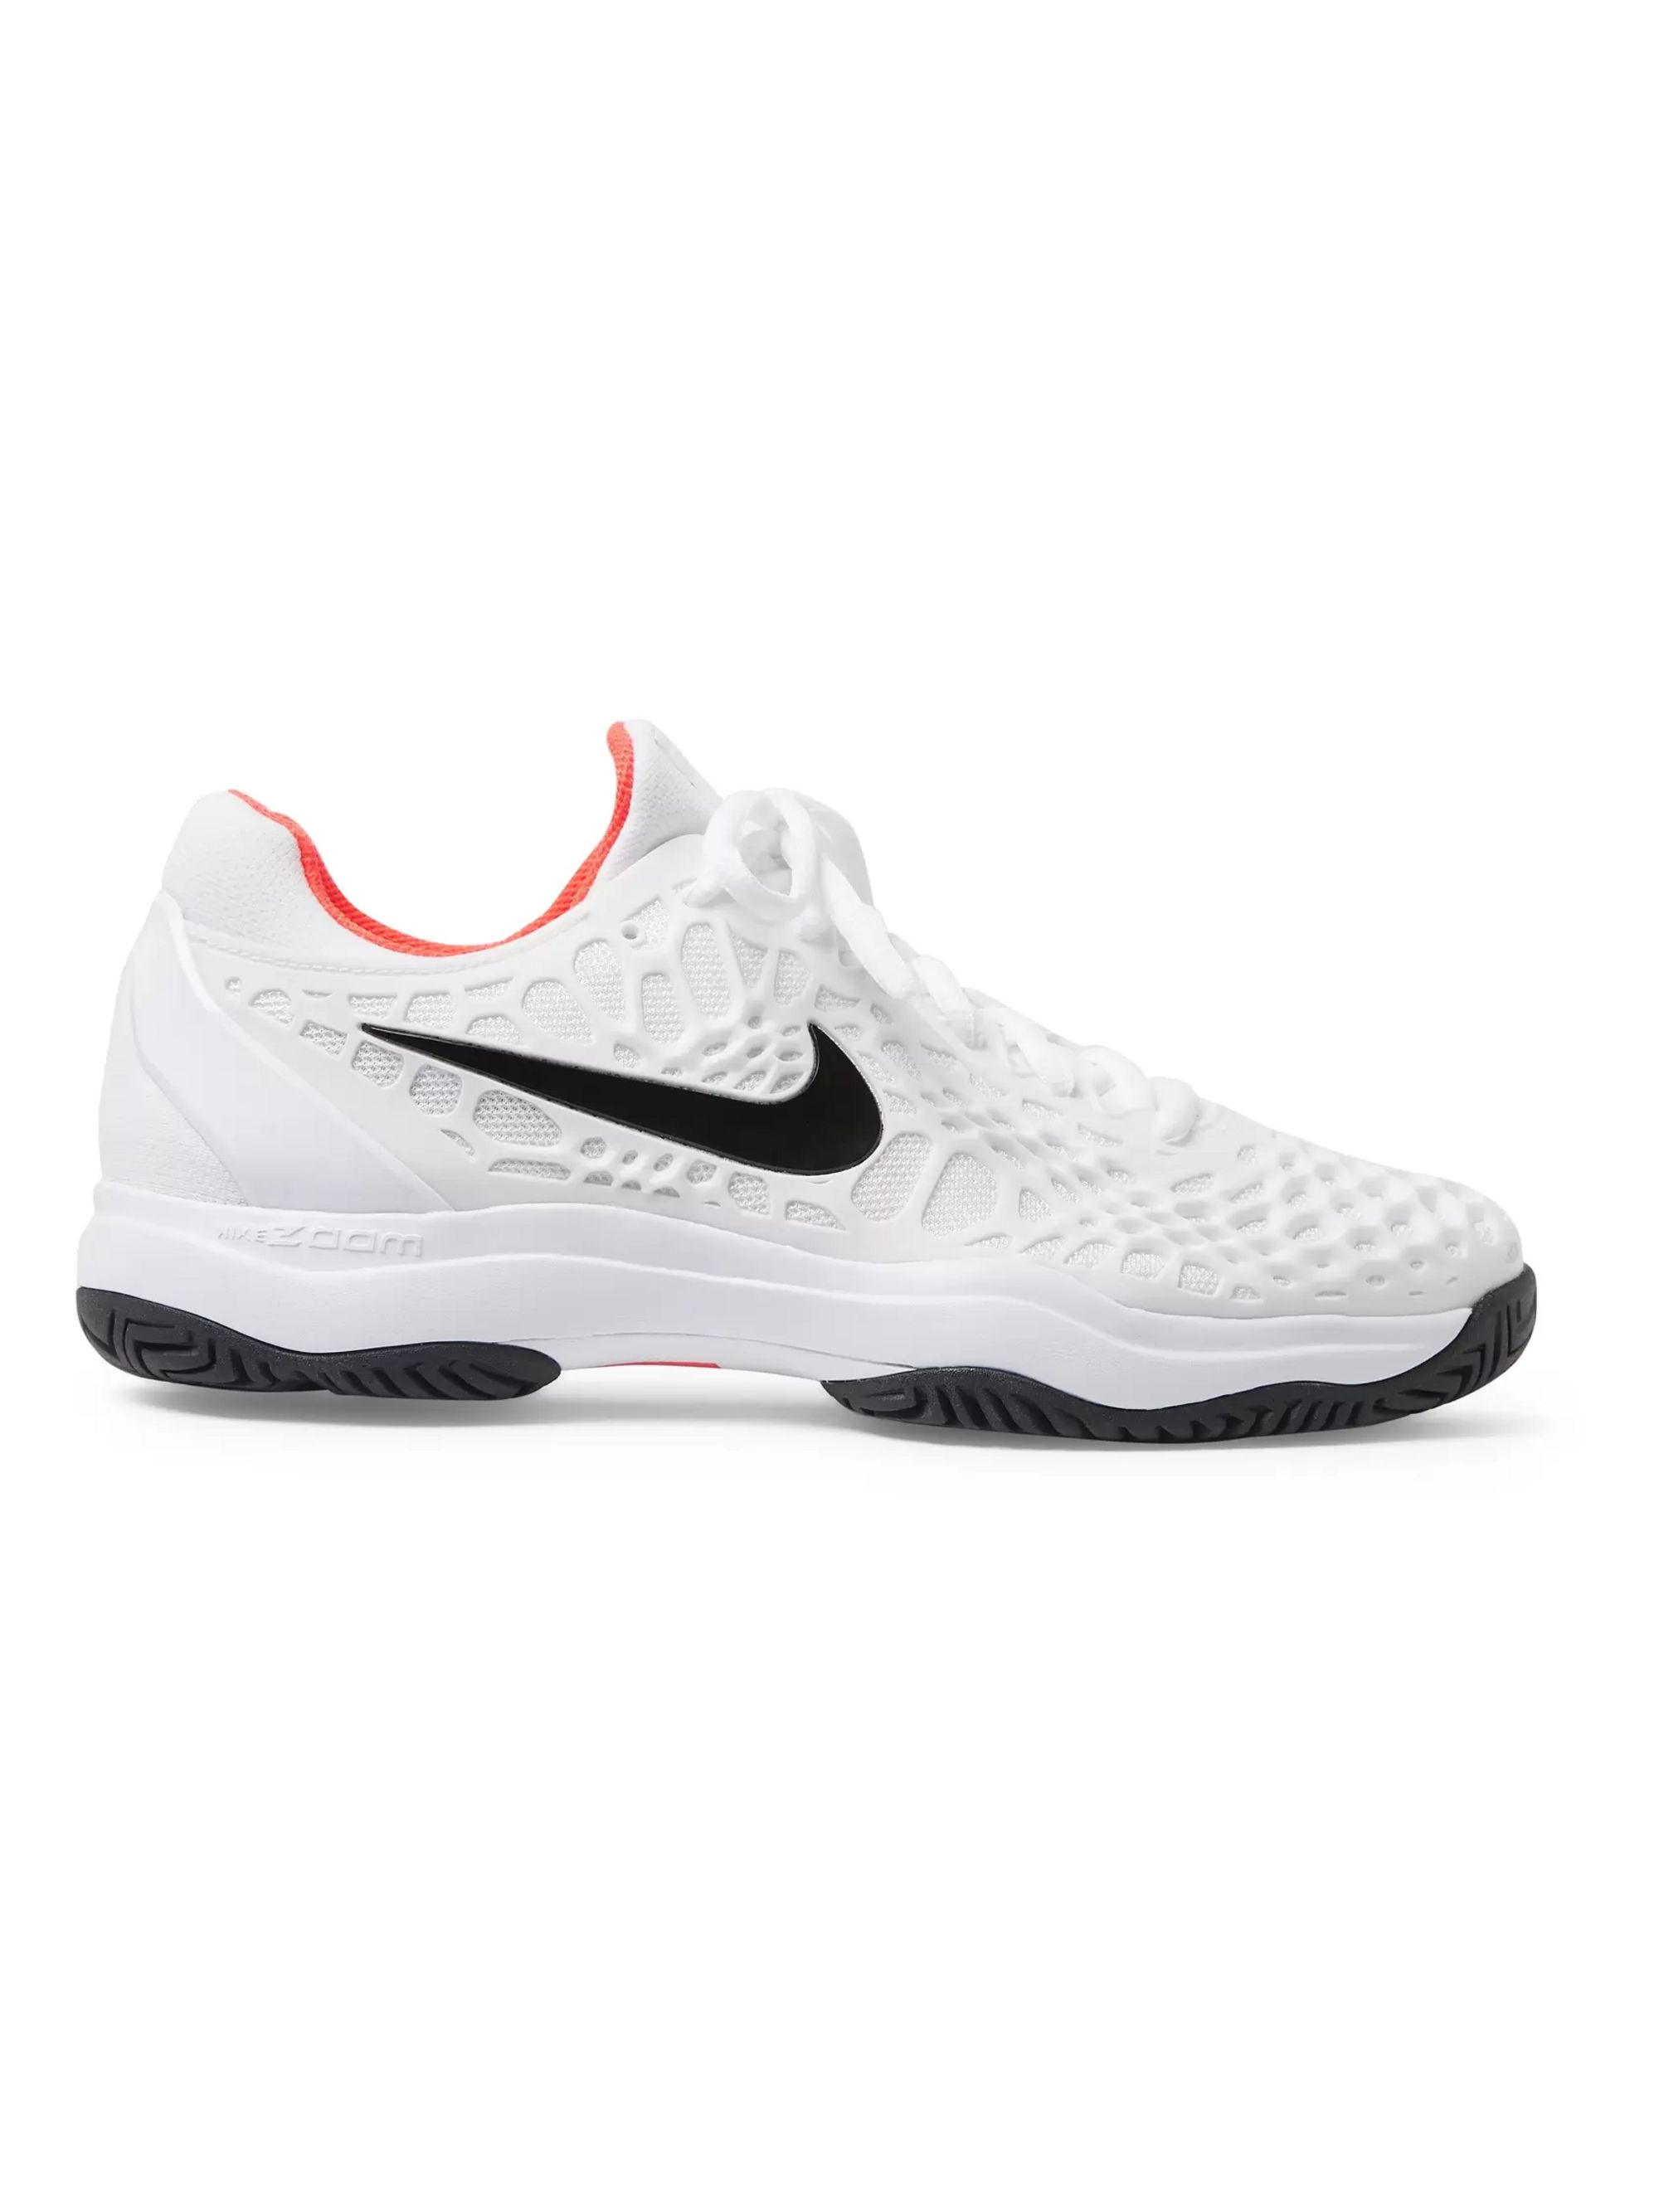 Nike Air Zoom Cage 3 HC (WhiteBlackBright Crimson) Men's